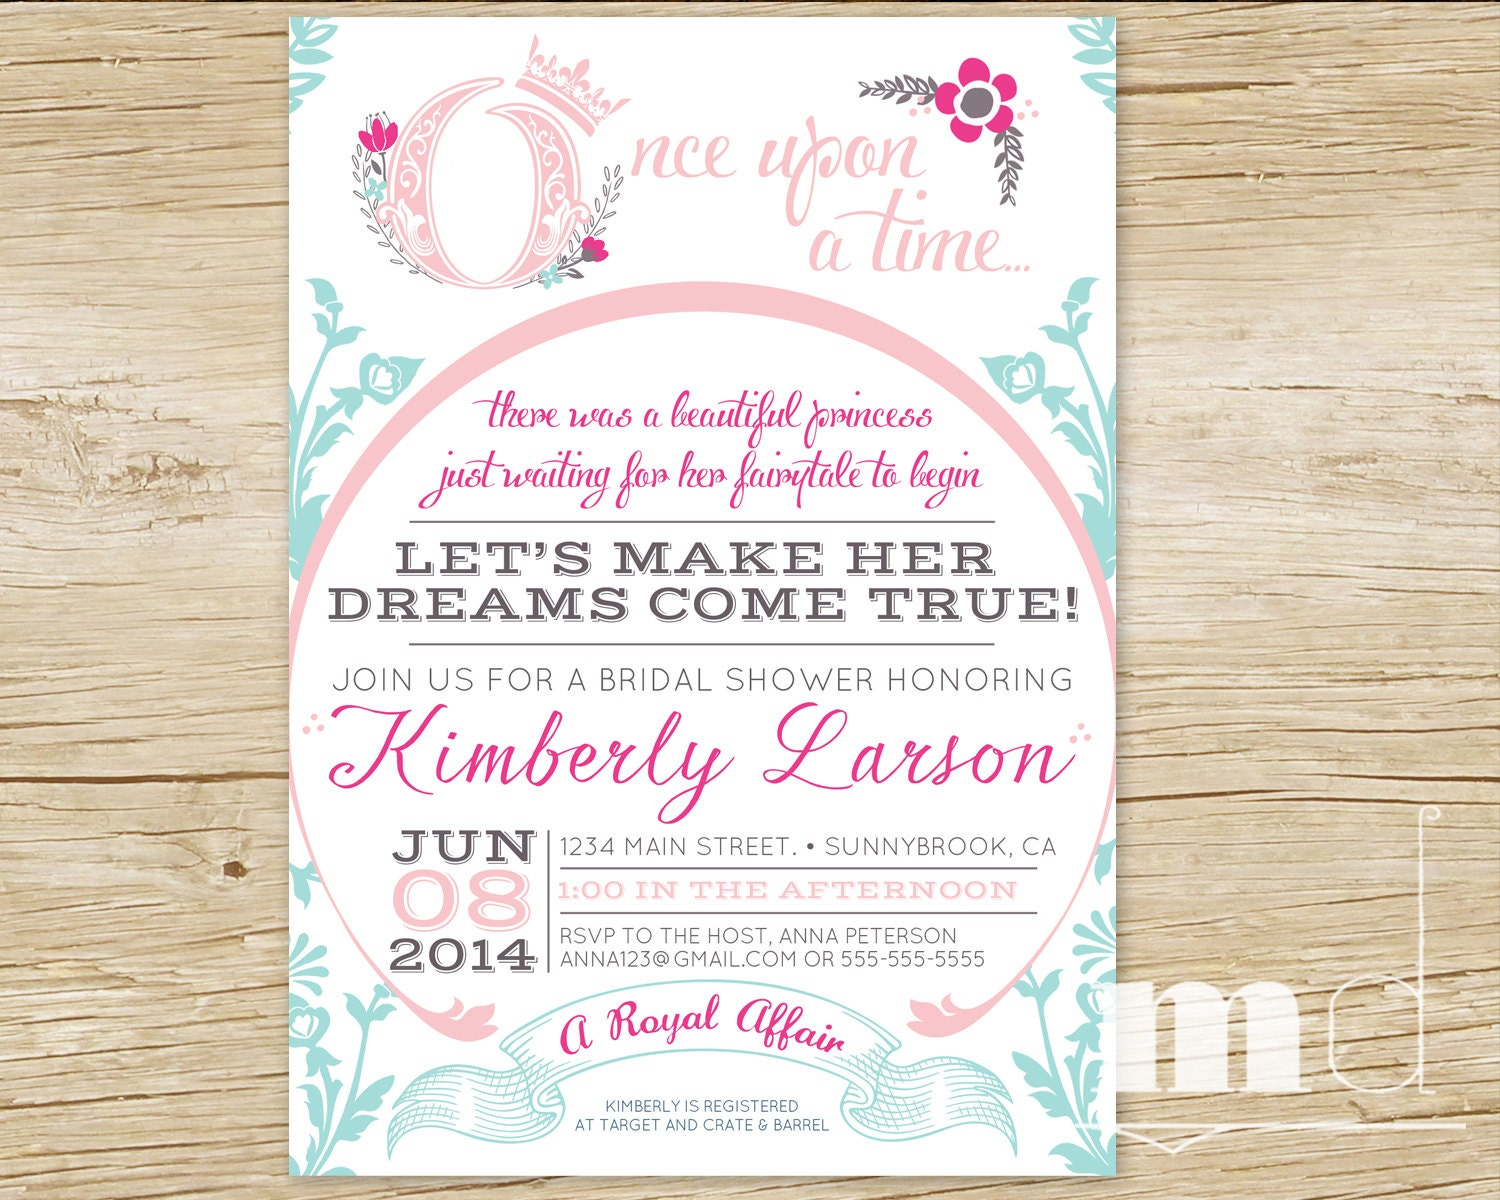 Fairytale Wedding Shower Invitations Once Upon A Time Bridal Shower ...